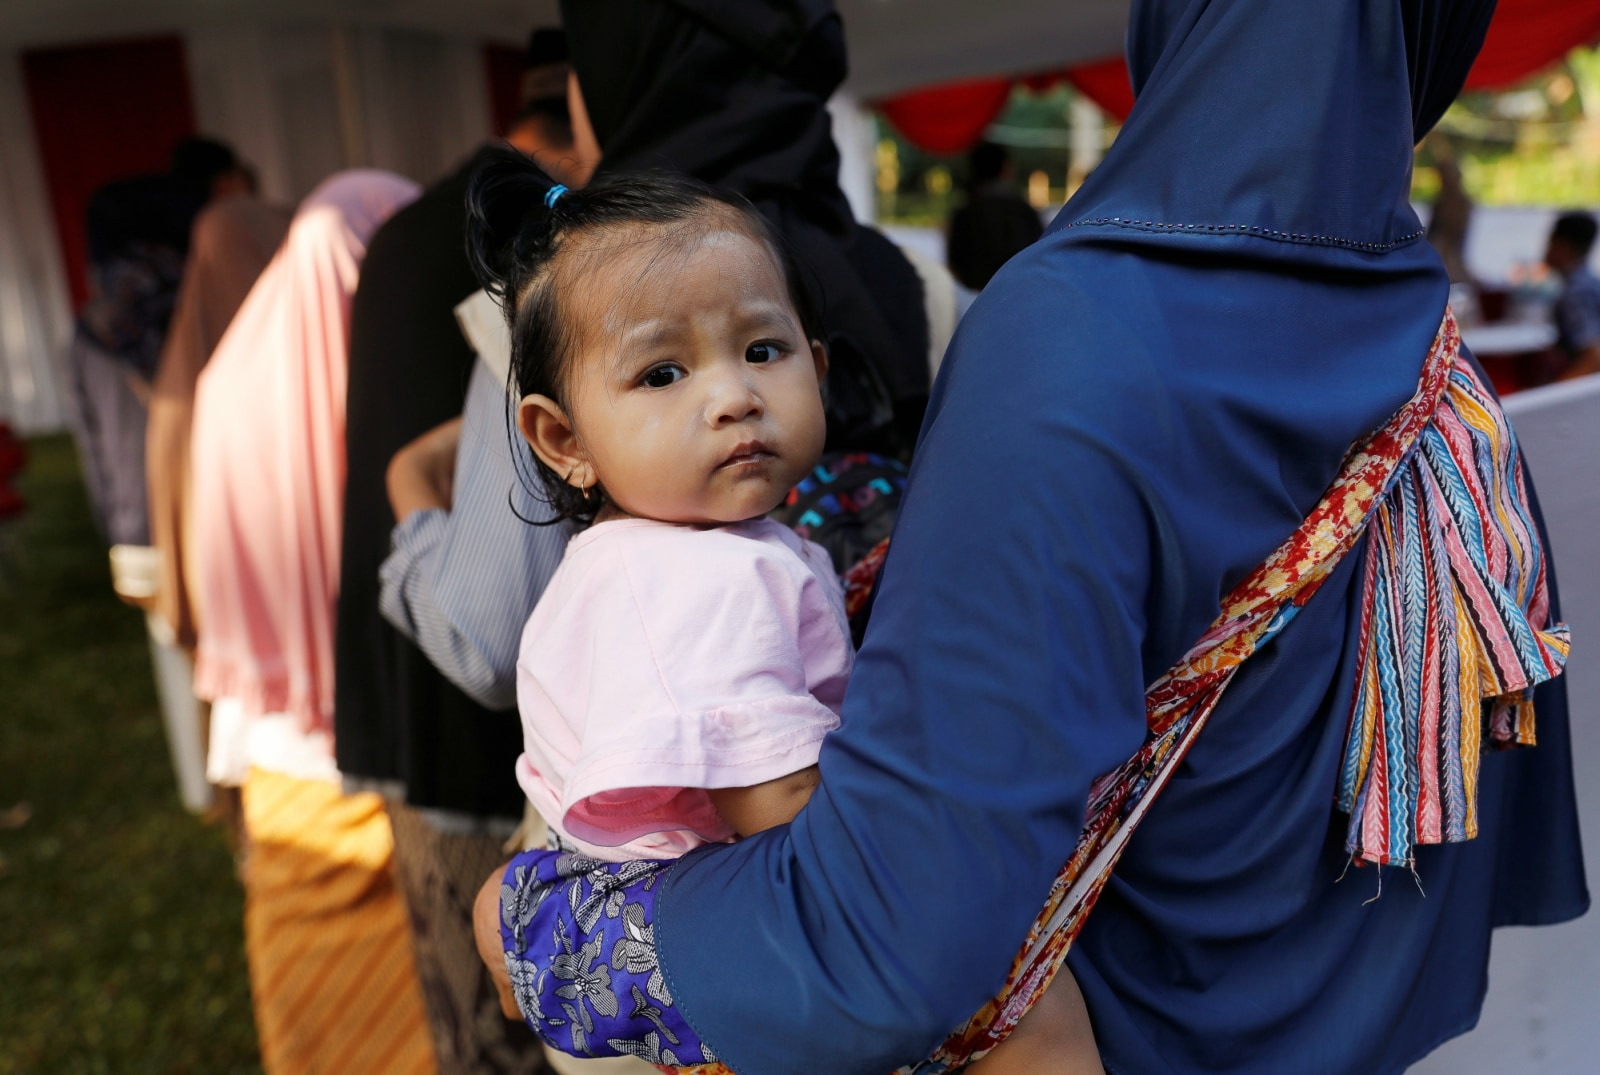 A woman carrying her child queues up at a polling booth to vote during elections in Bogor, West Java, Indonesia April 17, 2019. REUTERS/Willy Kurniawan